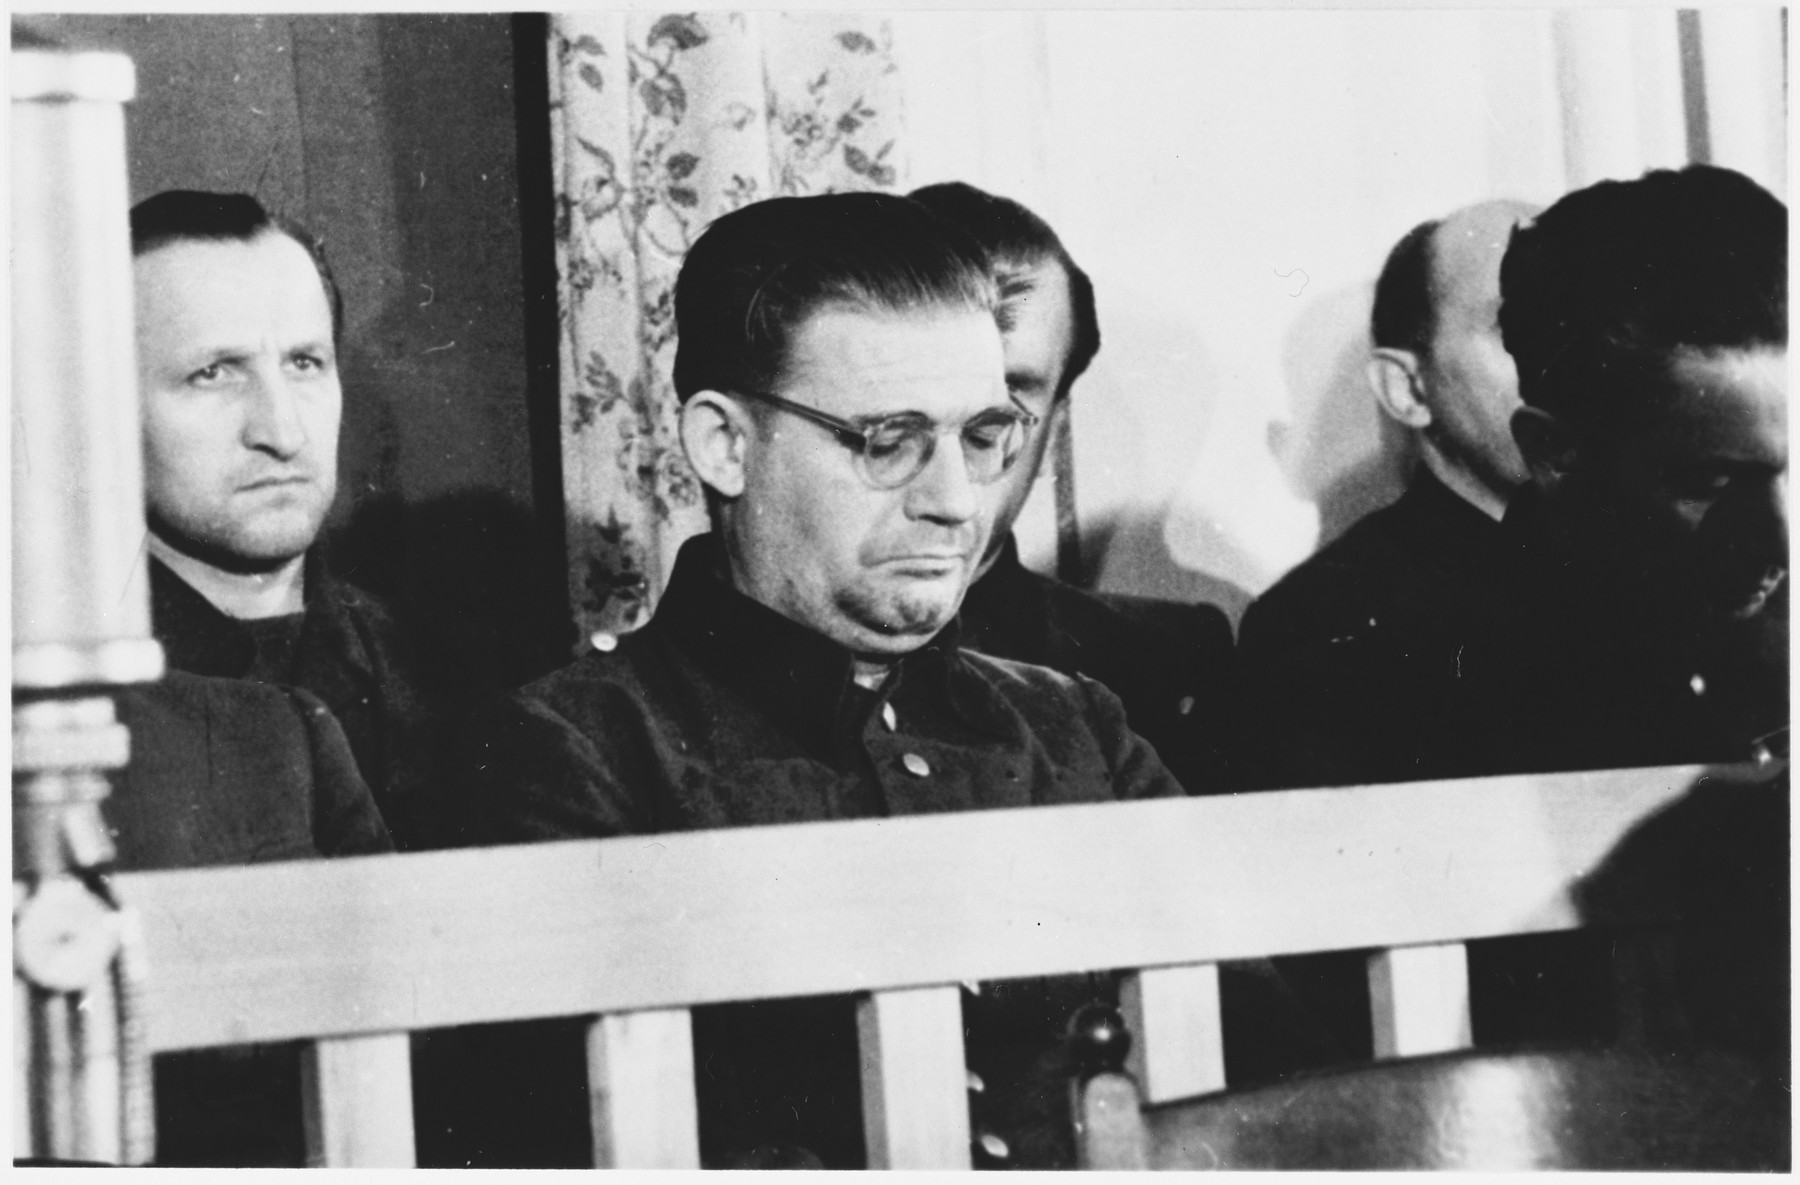 Defendants Martin Knittler (left) and Kurt Eccarius (center front) sit in the dock at the Sachsenhausen concentration camp war crimes trial in Berlin.